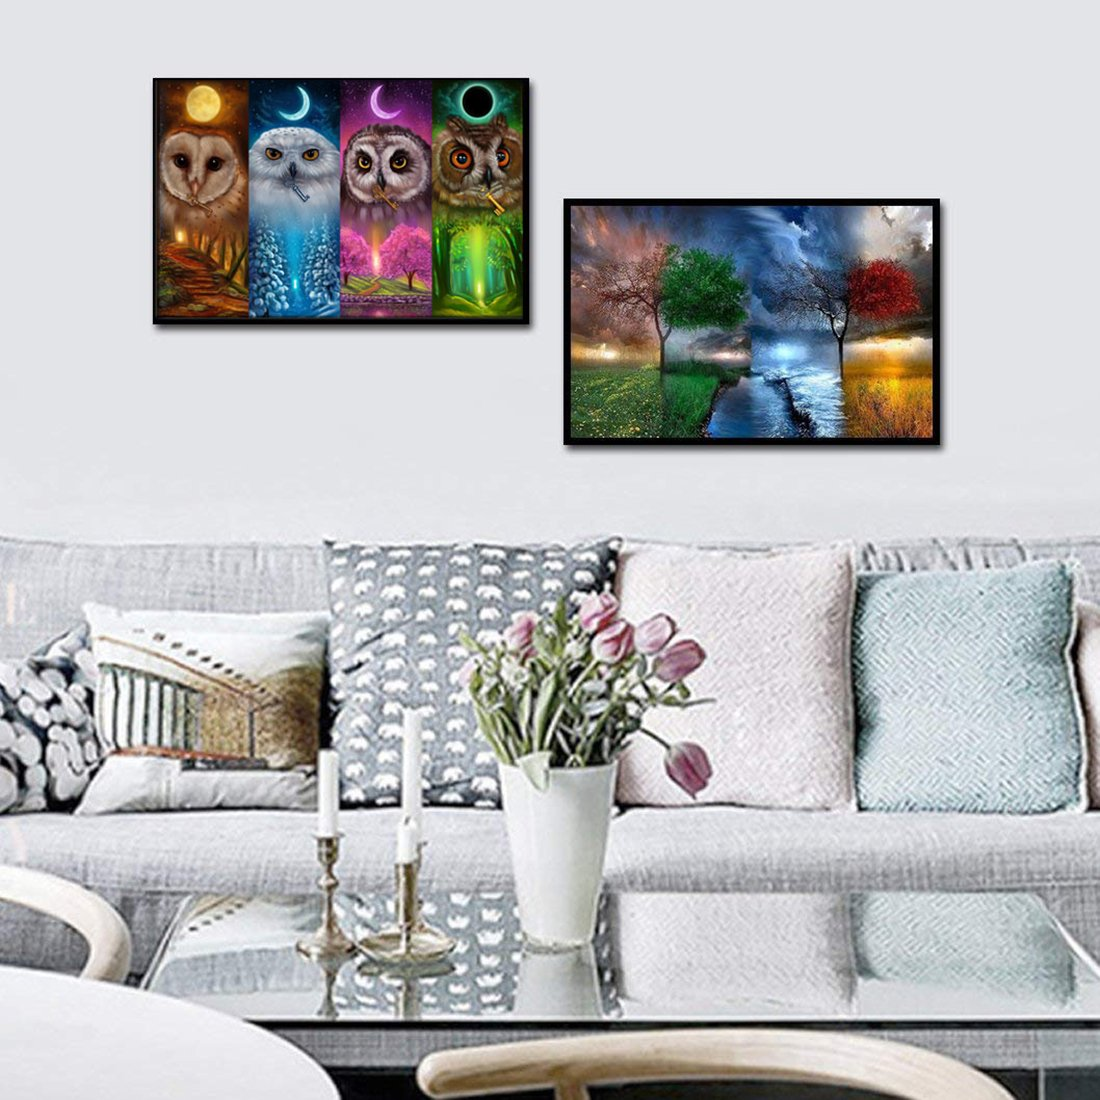 12x16inch 12x16inch /& Four Seasons Tree DIY Rhinestone Pasted Paint Set for Arts Craft Decoration 2 Pack by Yomiie 5D Diamond Painting Full Drill by Number Kits for Adults Kids Four Seasons Owl